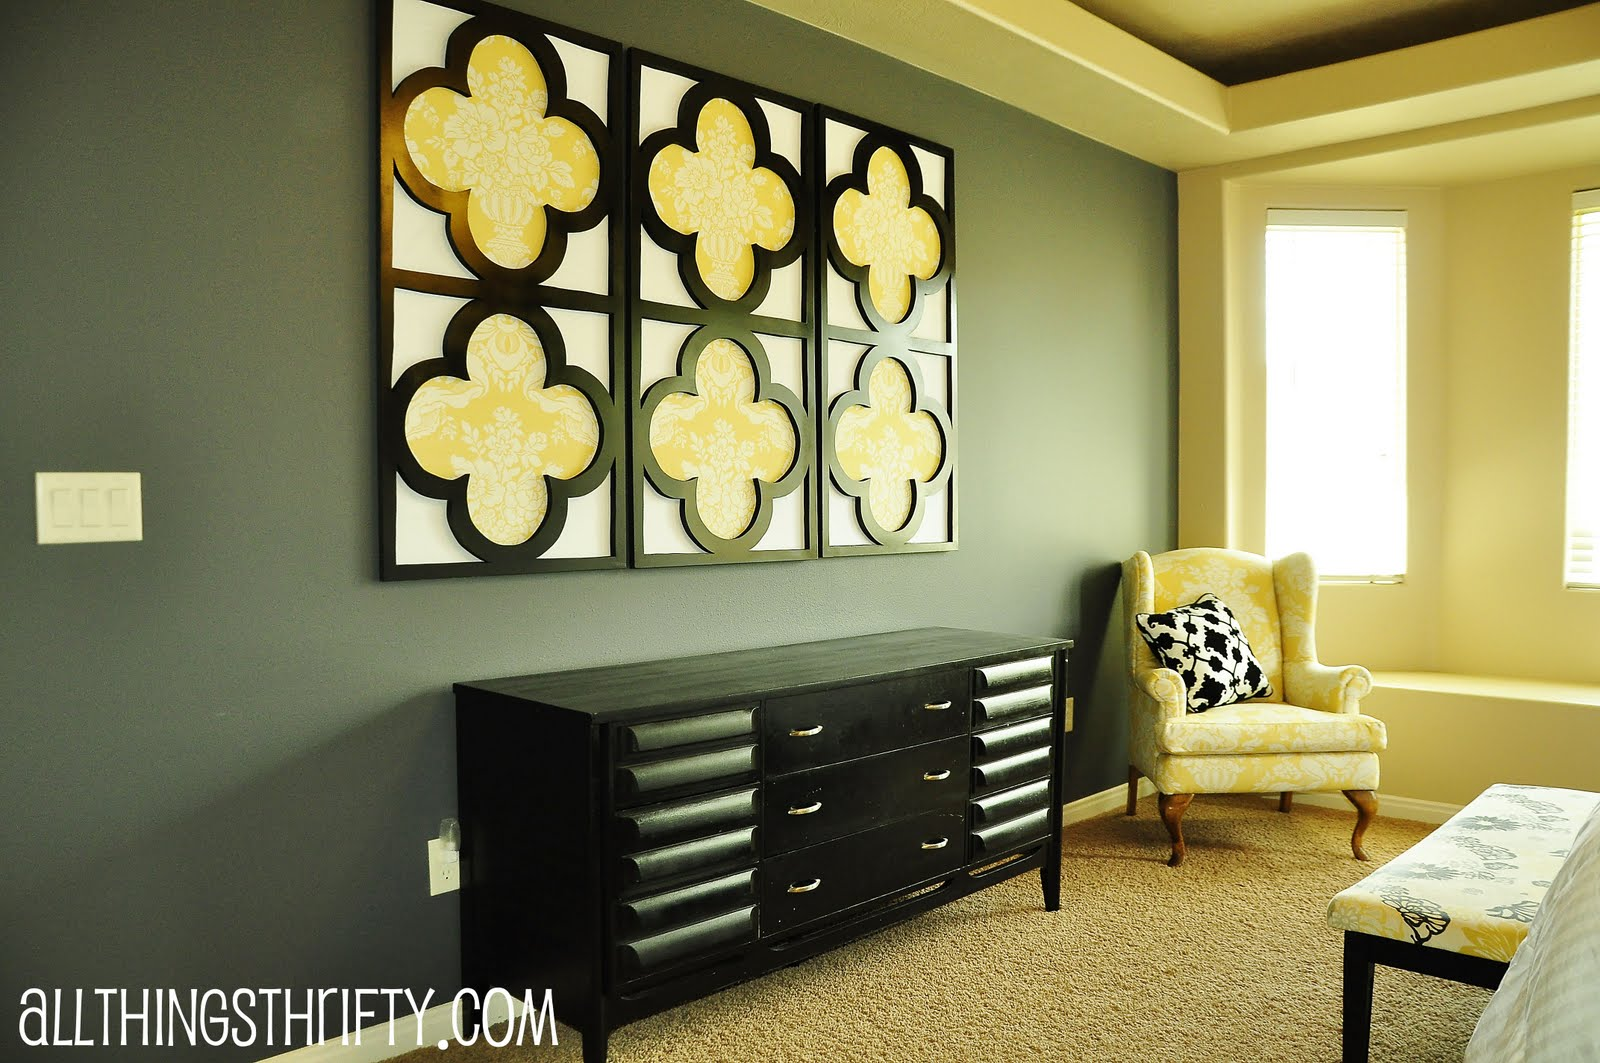 Cool Artwork For Walls Tutorial Quatrefoil Diy Decorative Wall Art